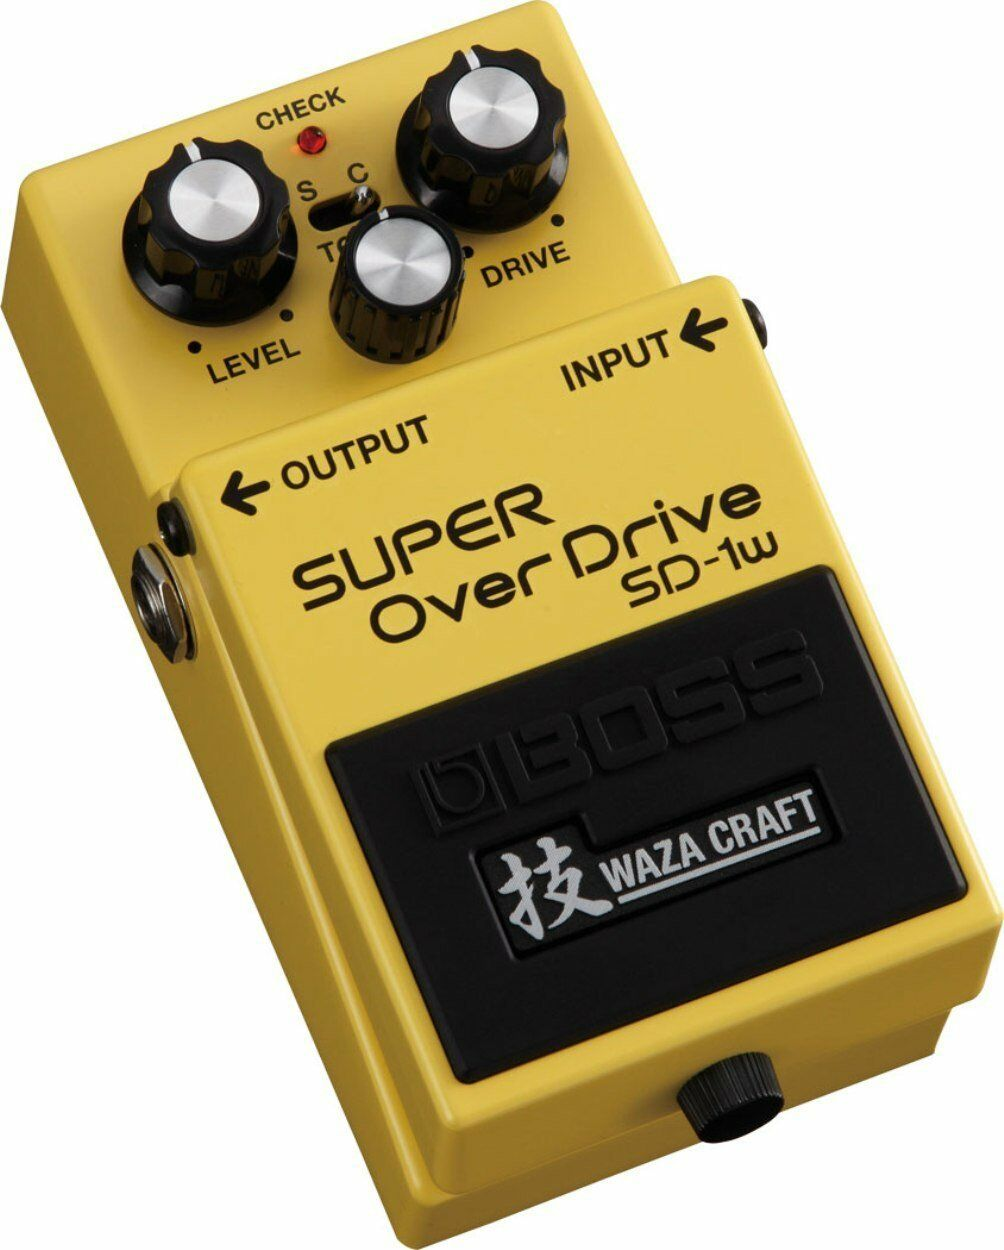 New BOSS SD-1W Super OverDrive Guitar Effects Pedal WAZA CRAFT From Japan